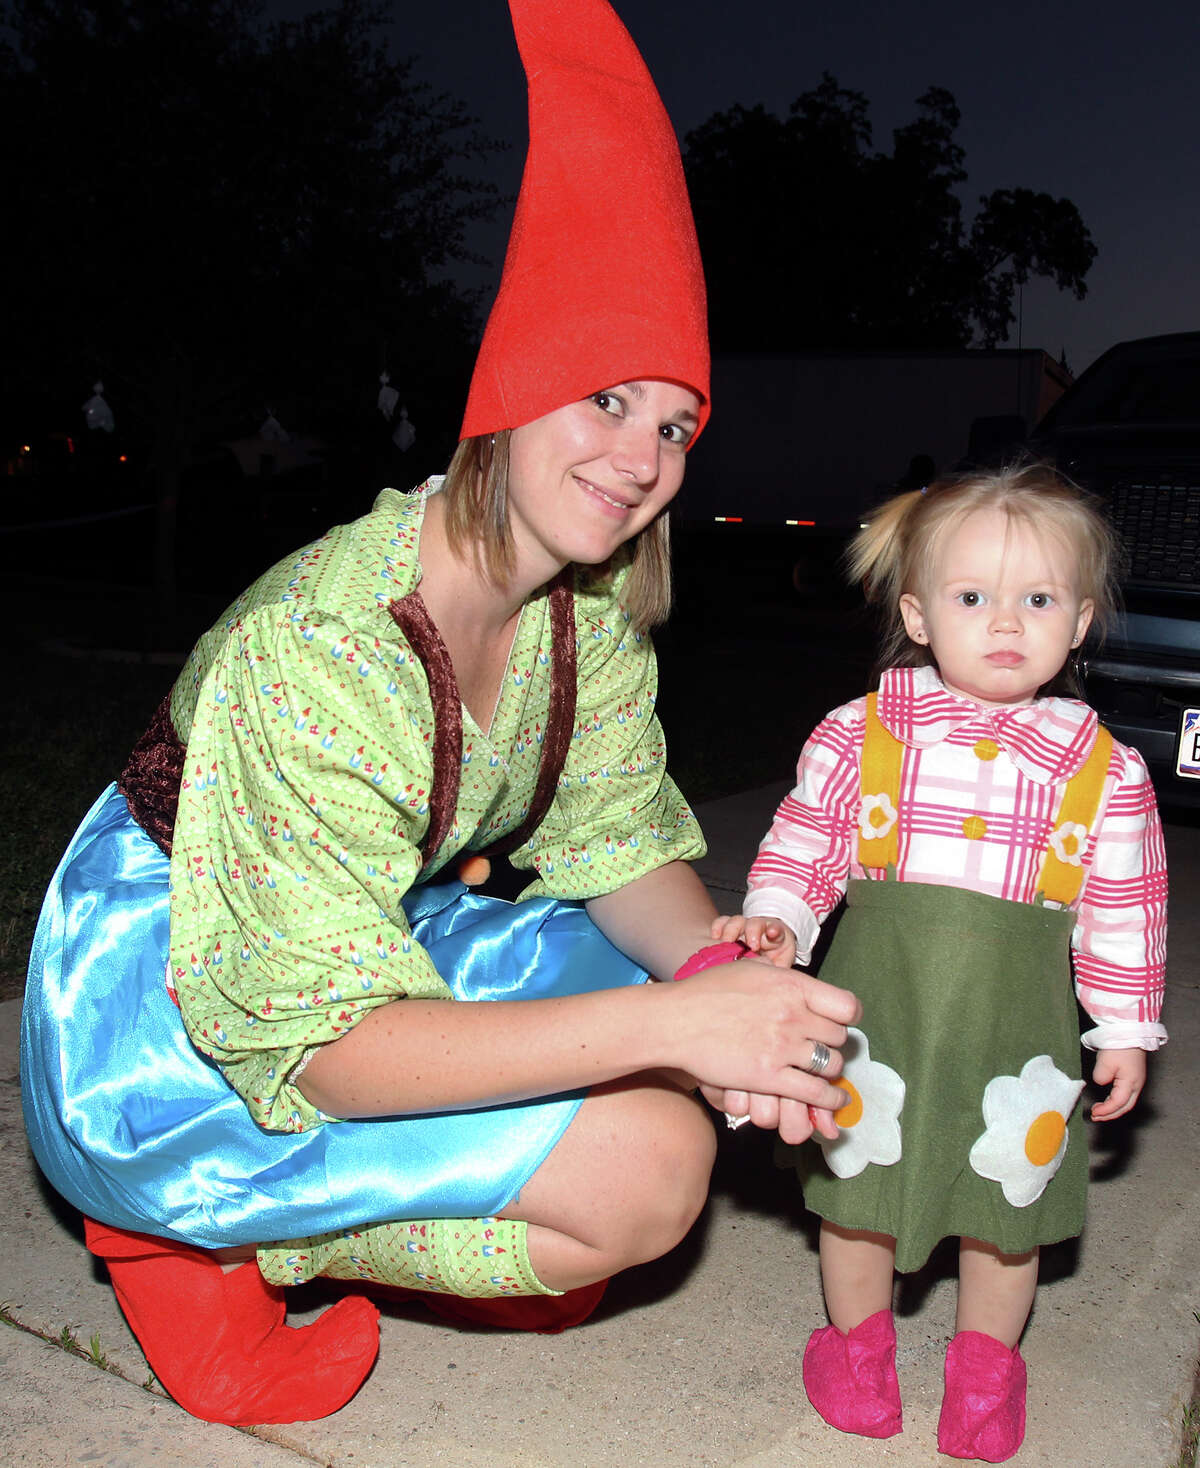 Heather Jurek enjoys the evening with daughter Addison as kids go trick-or-treating on the Southeast Side on October 31, 2013.